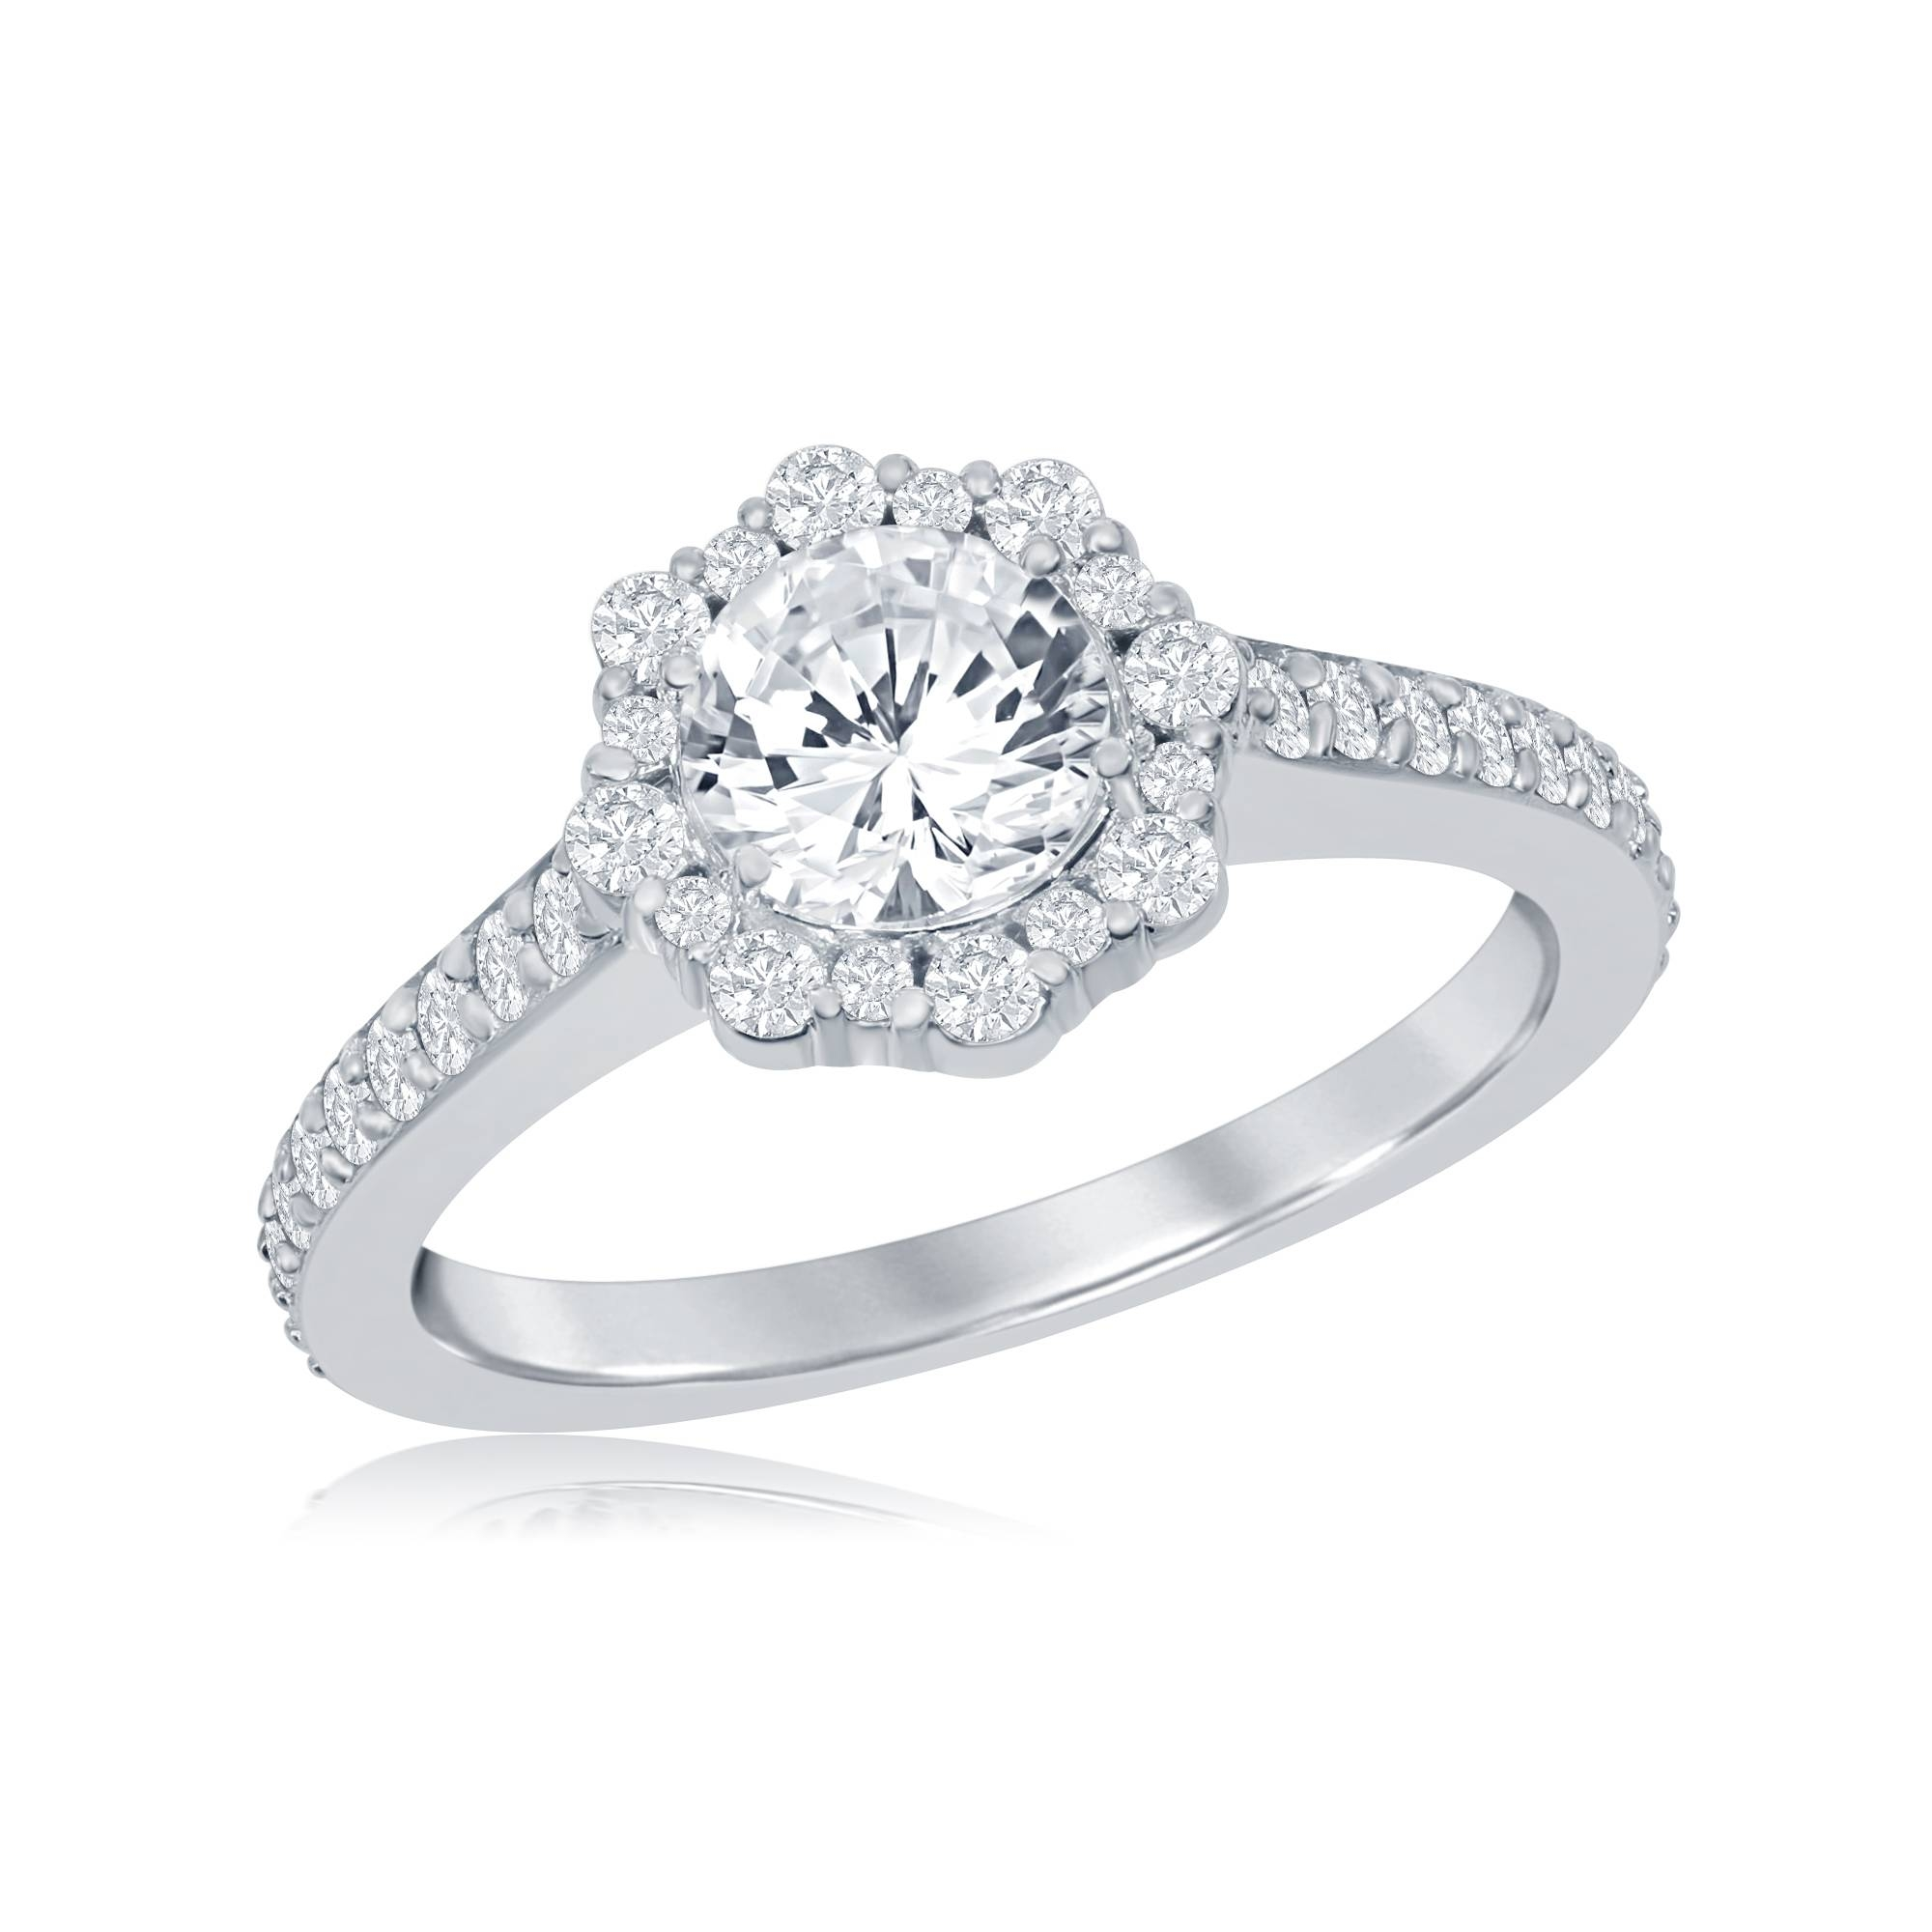 Engagement Rings : B Beautiful Engagement Rings Tampa Diamond Intended For Tampa Engagement Rings (Gallery 2 of 15)